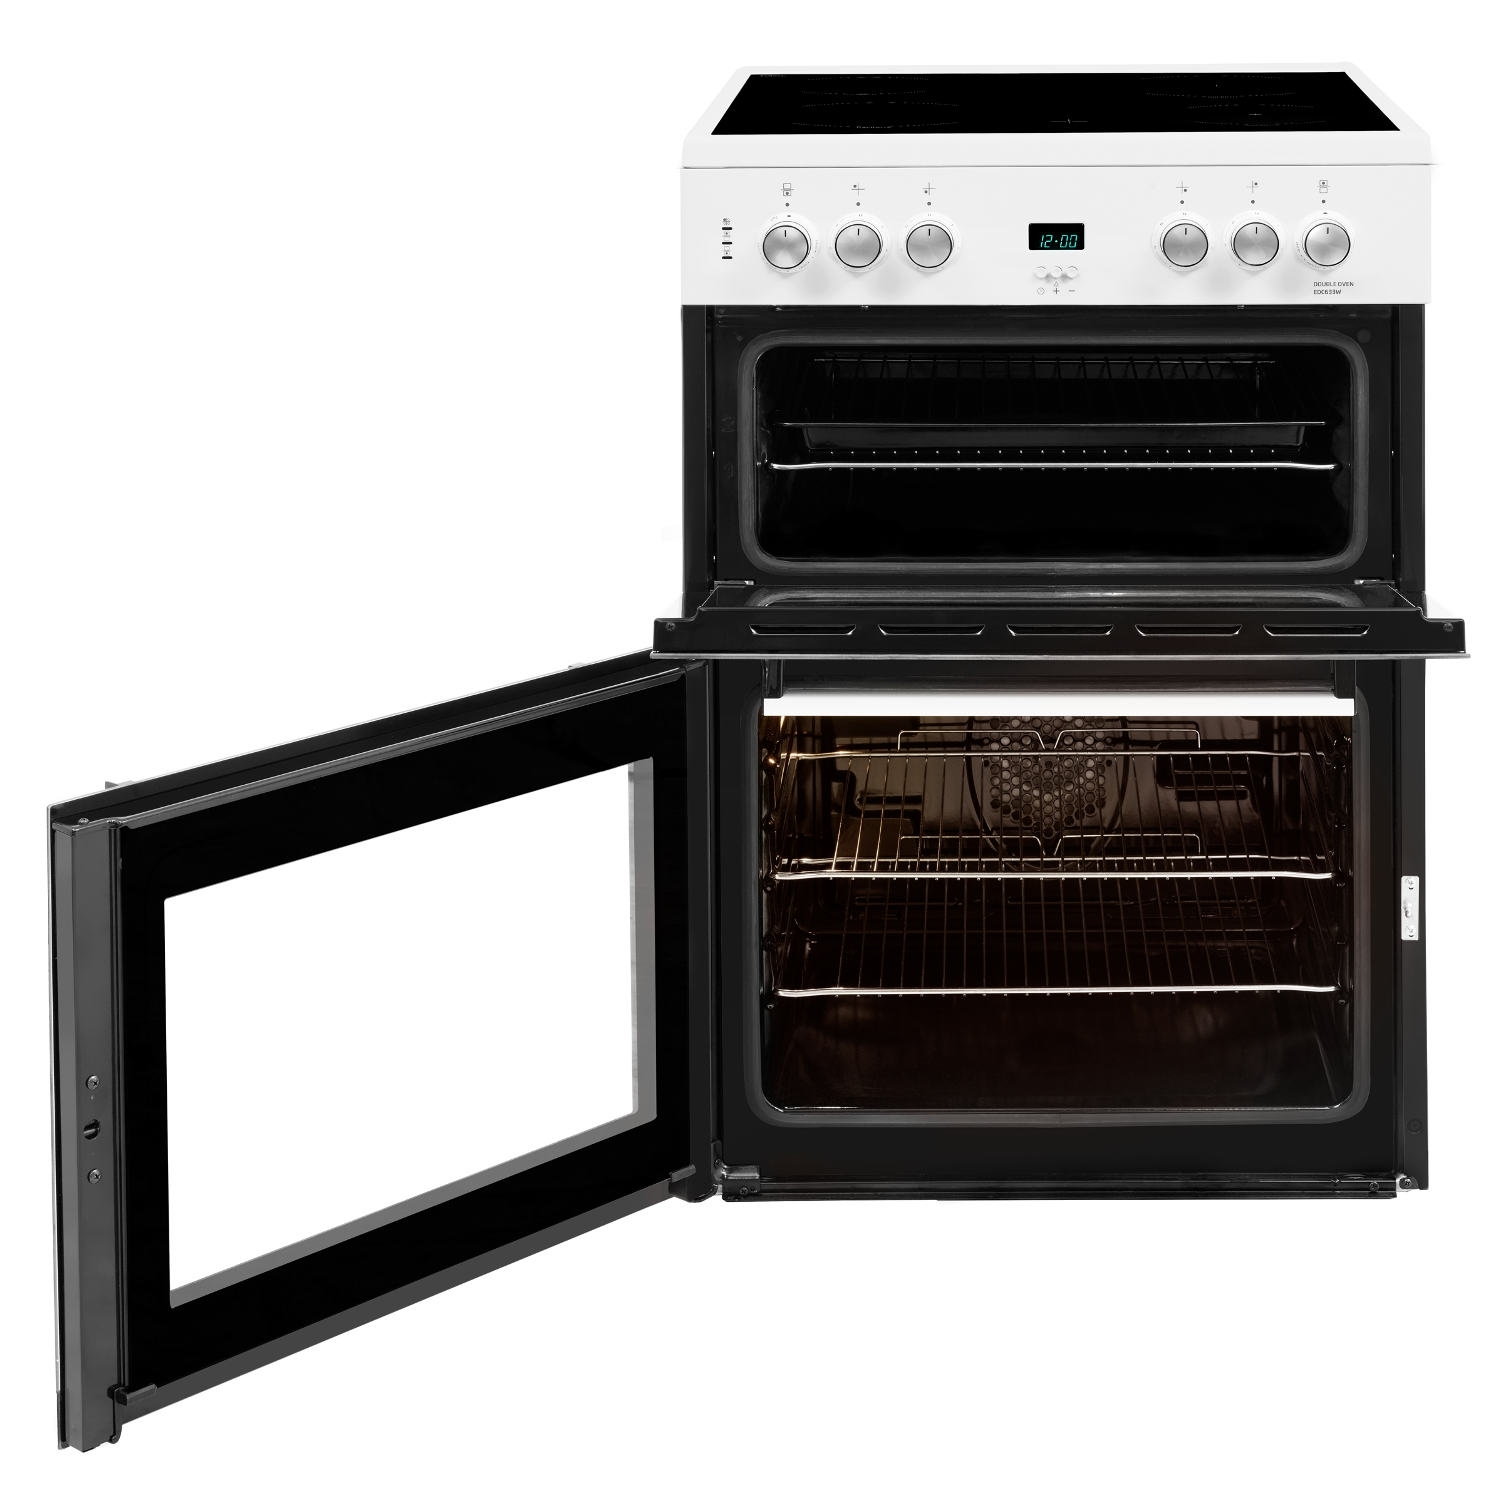 Beko 60cm Double Oven Electric Cooker with Ceramic Hob - White - A/A Rated - 3